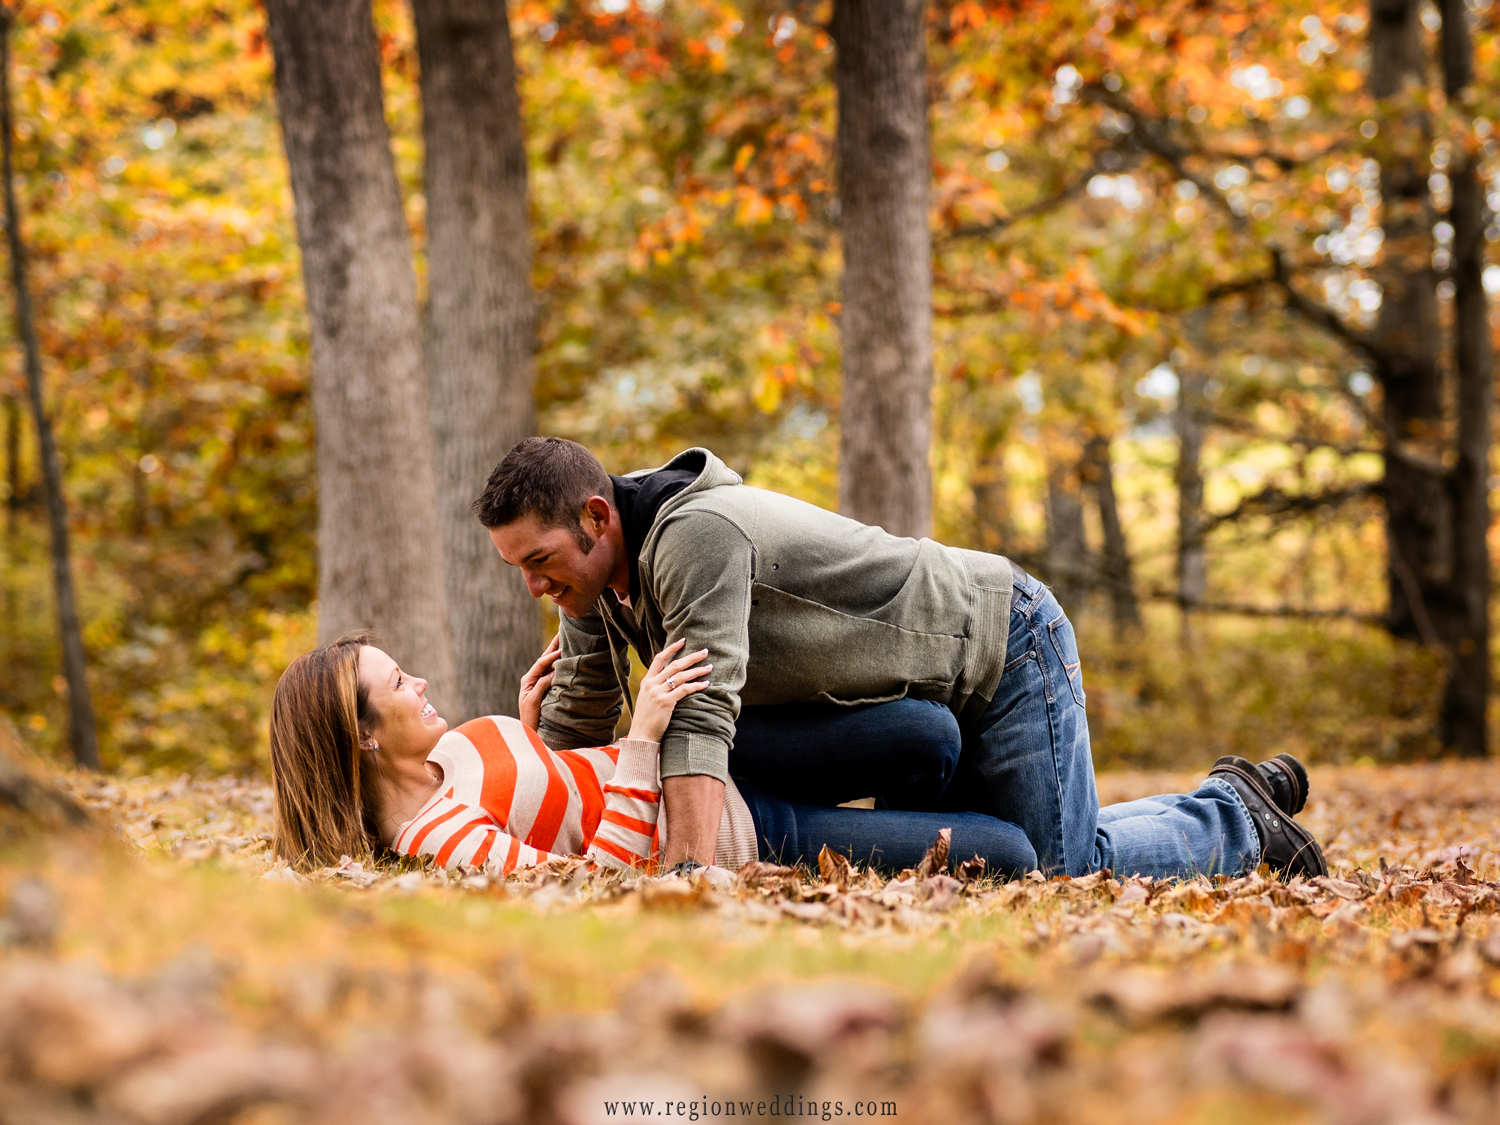 A couple playfully rolls around in a pile of leaves during a romantic walk in the park.